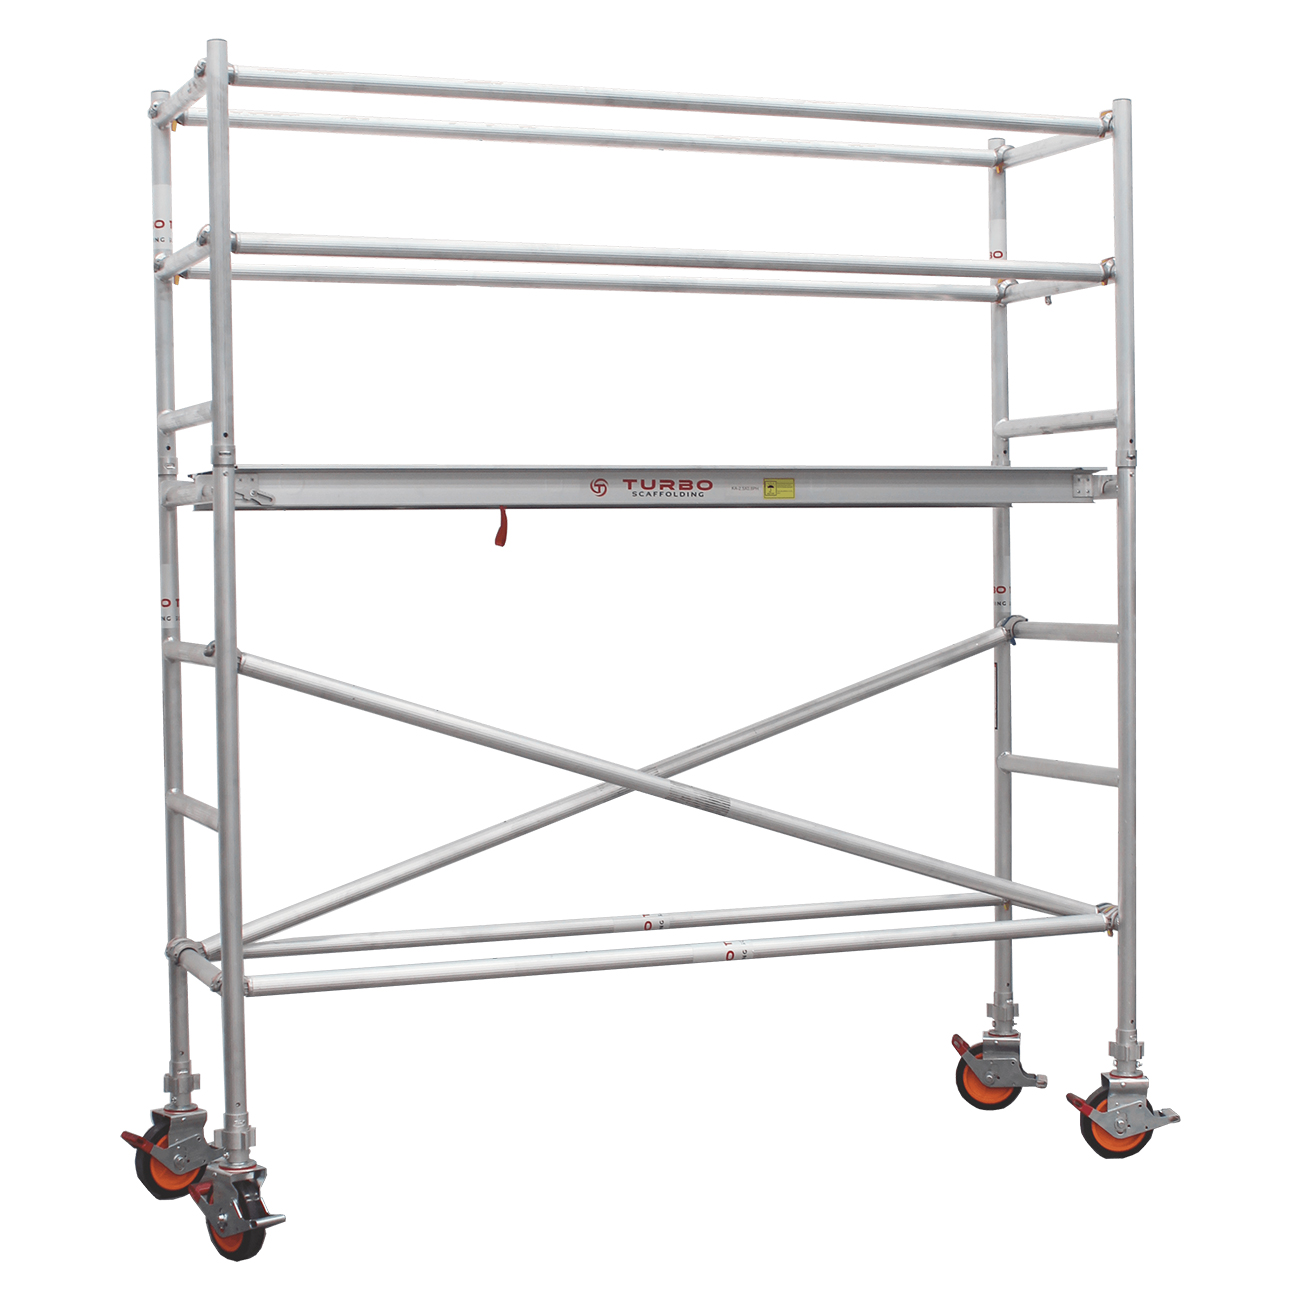 1.9m – 2.2m Narrow Aluminium Mobile Scaffold Tower (Standing Height)